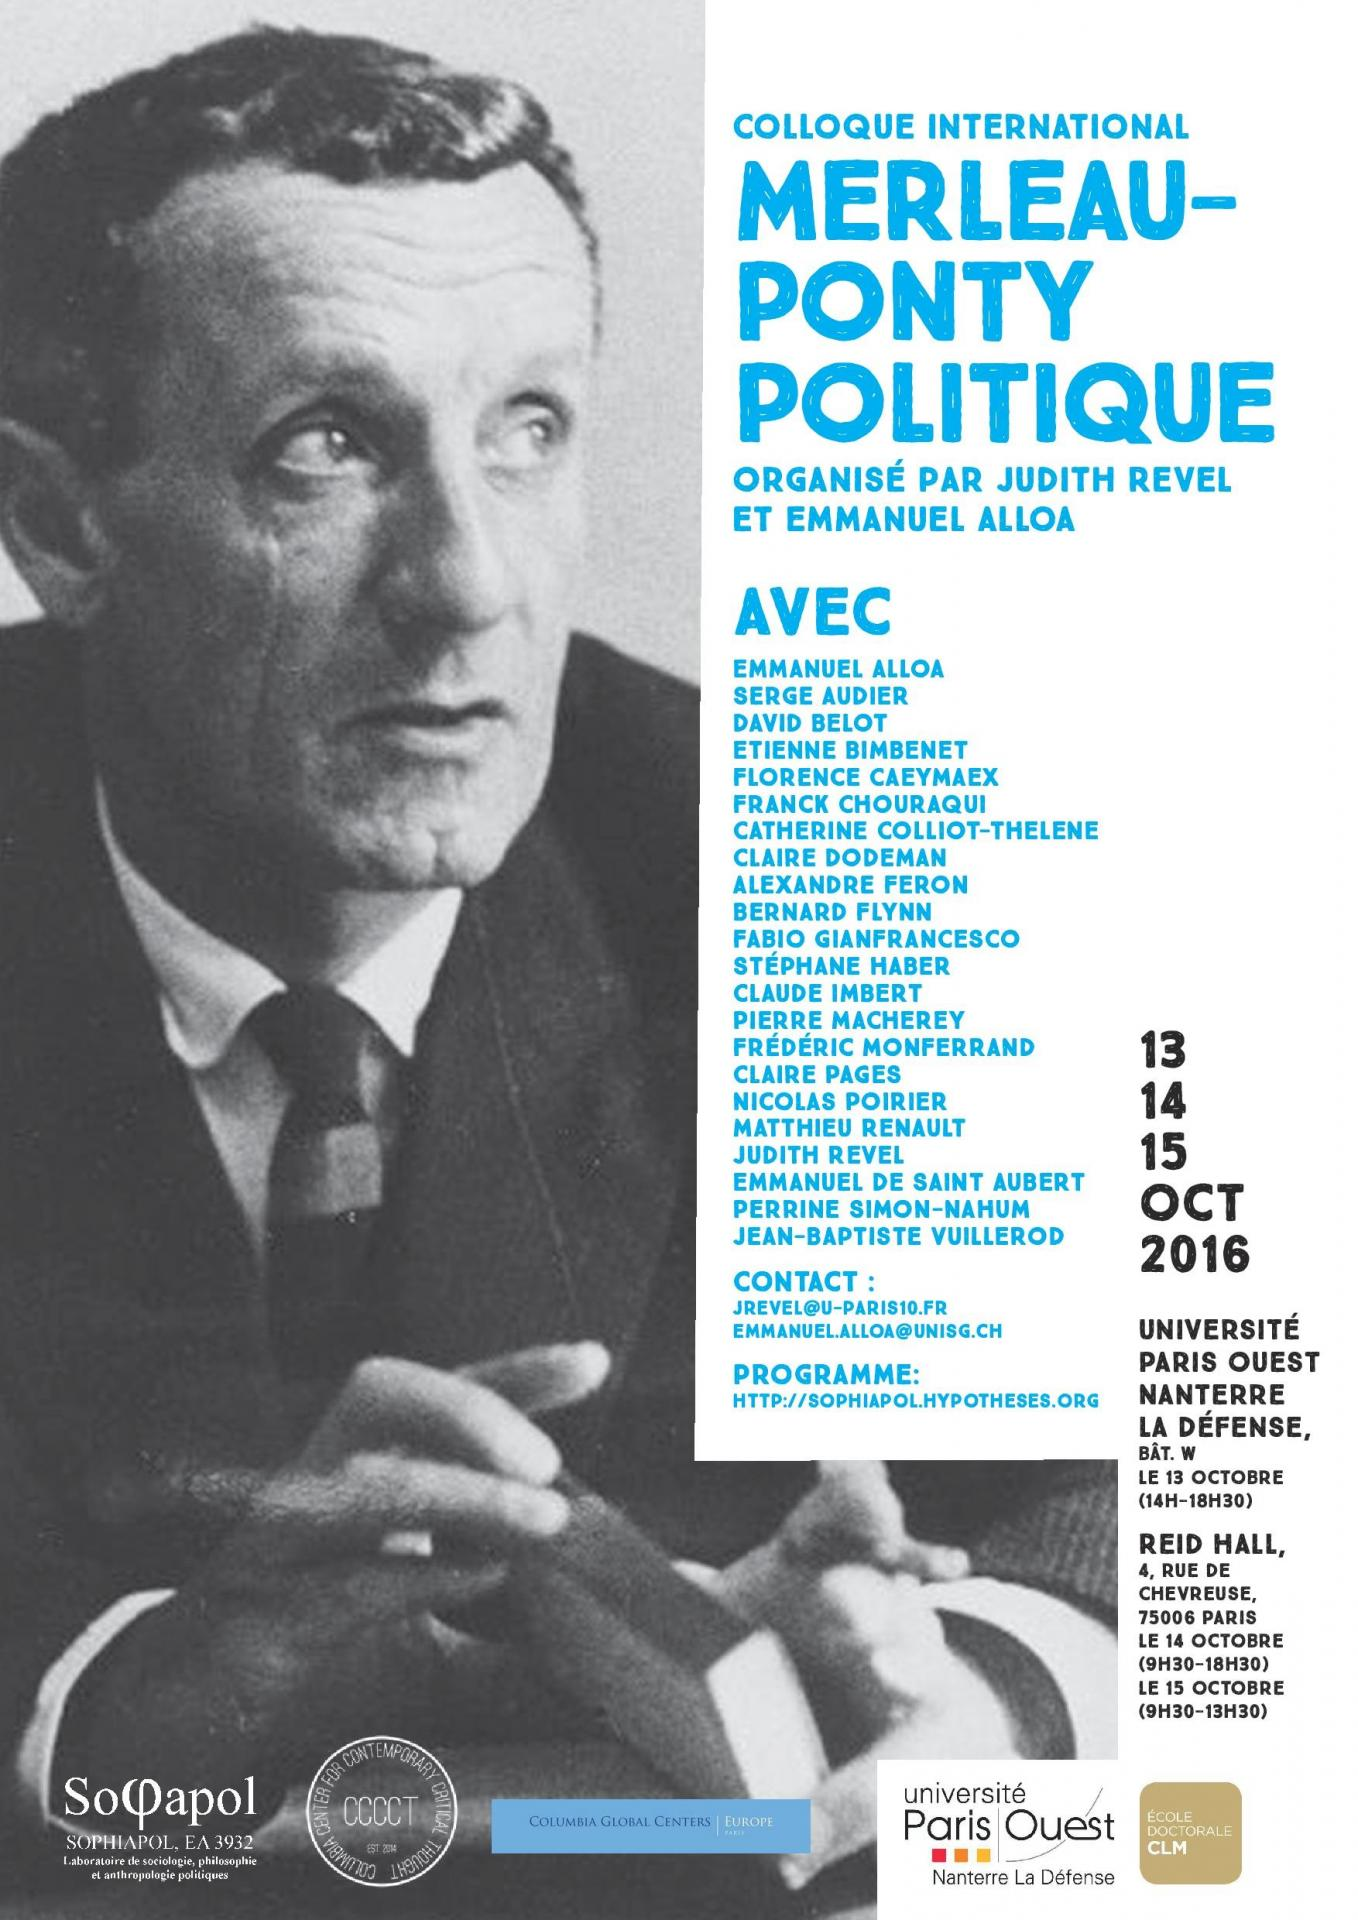 Colloque international : Merleau-Ponty politique, organisée par Judith Revel et Emmanuel Alloa